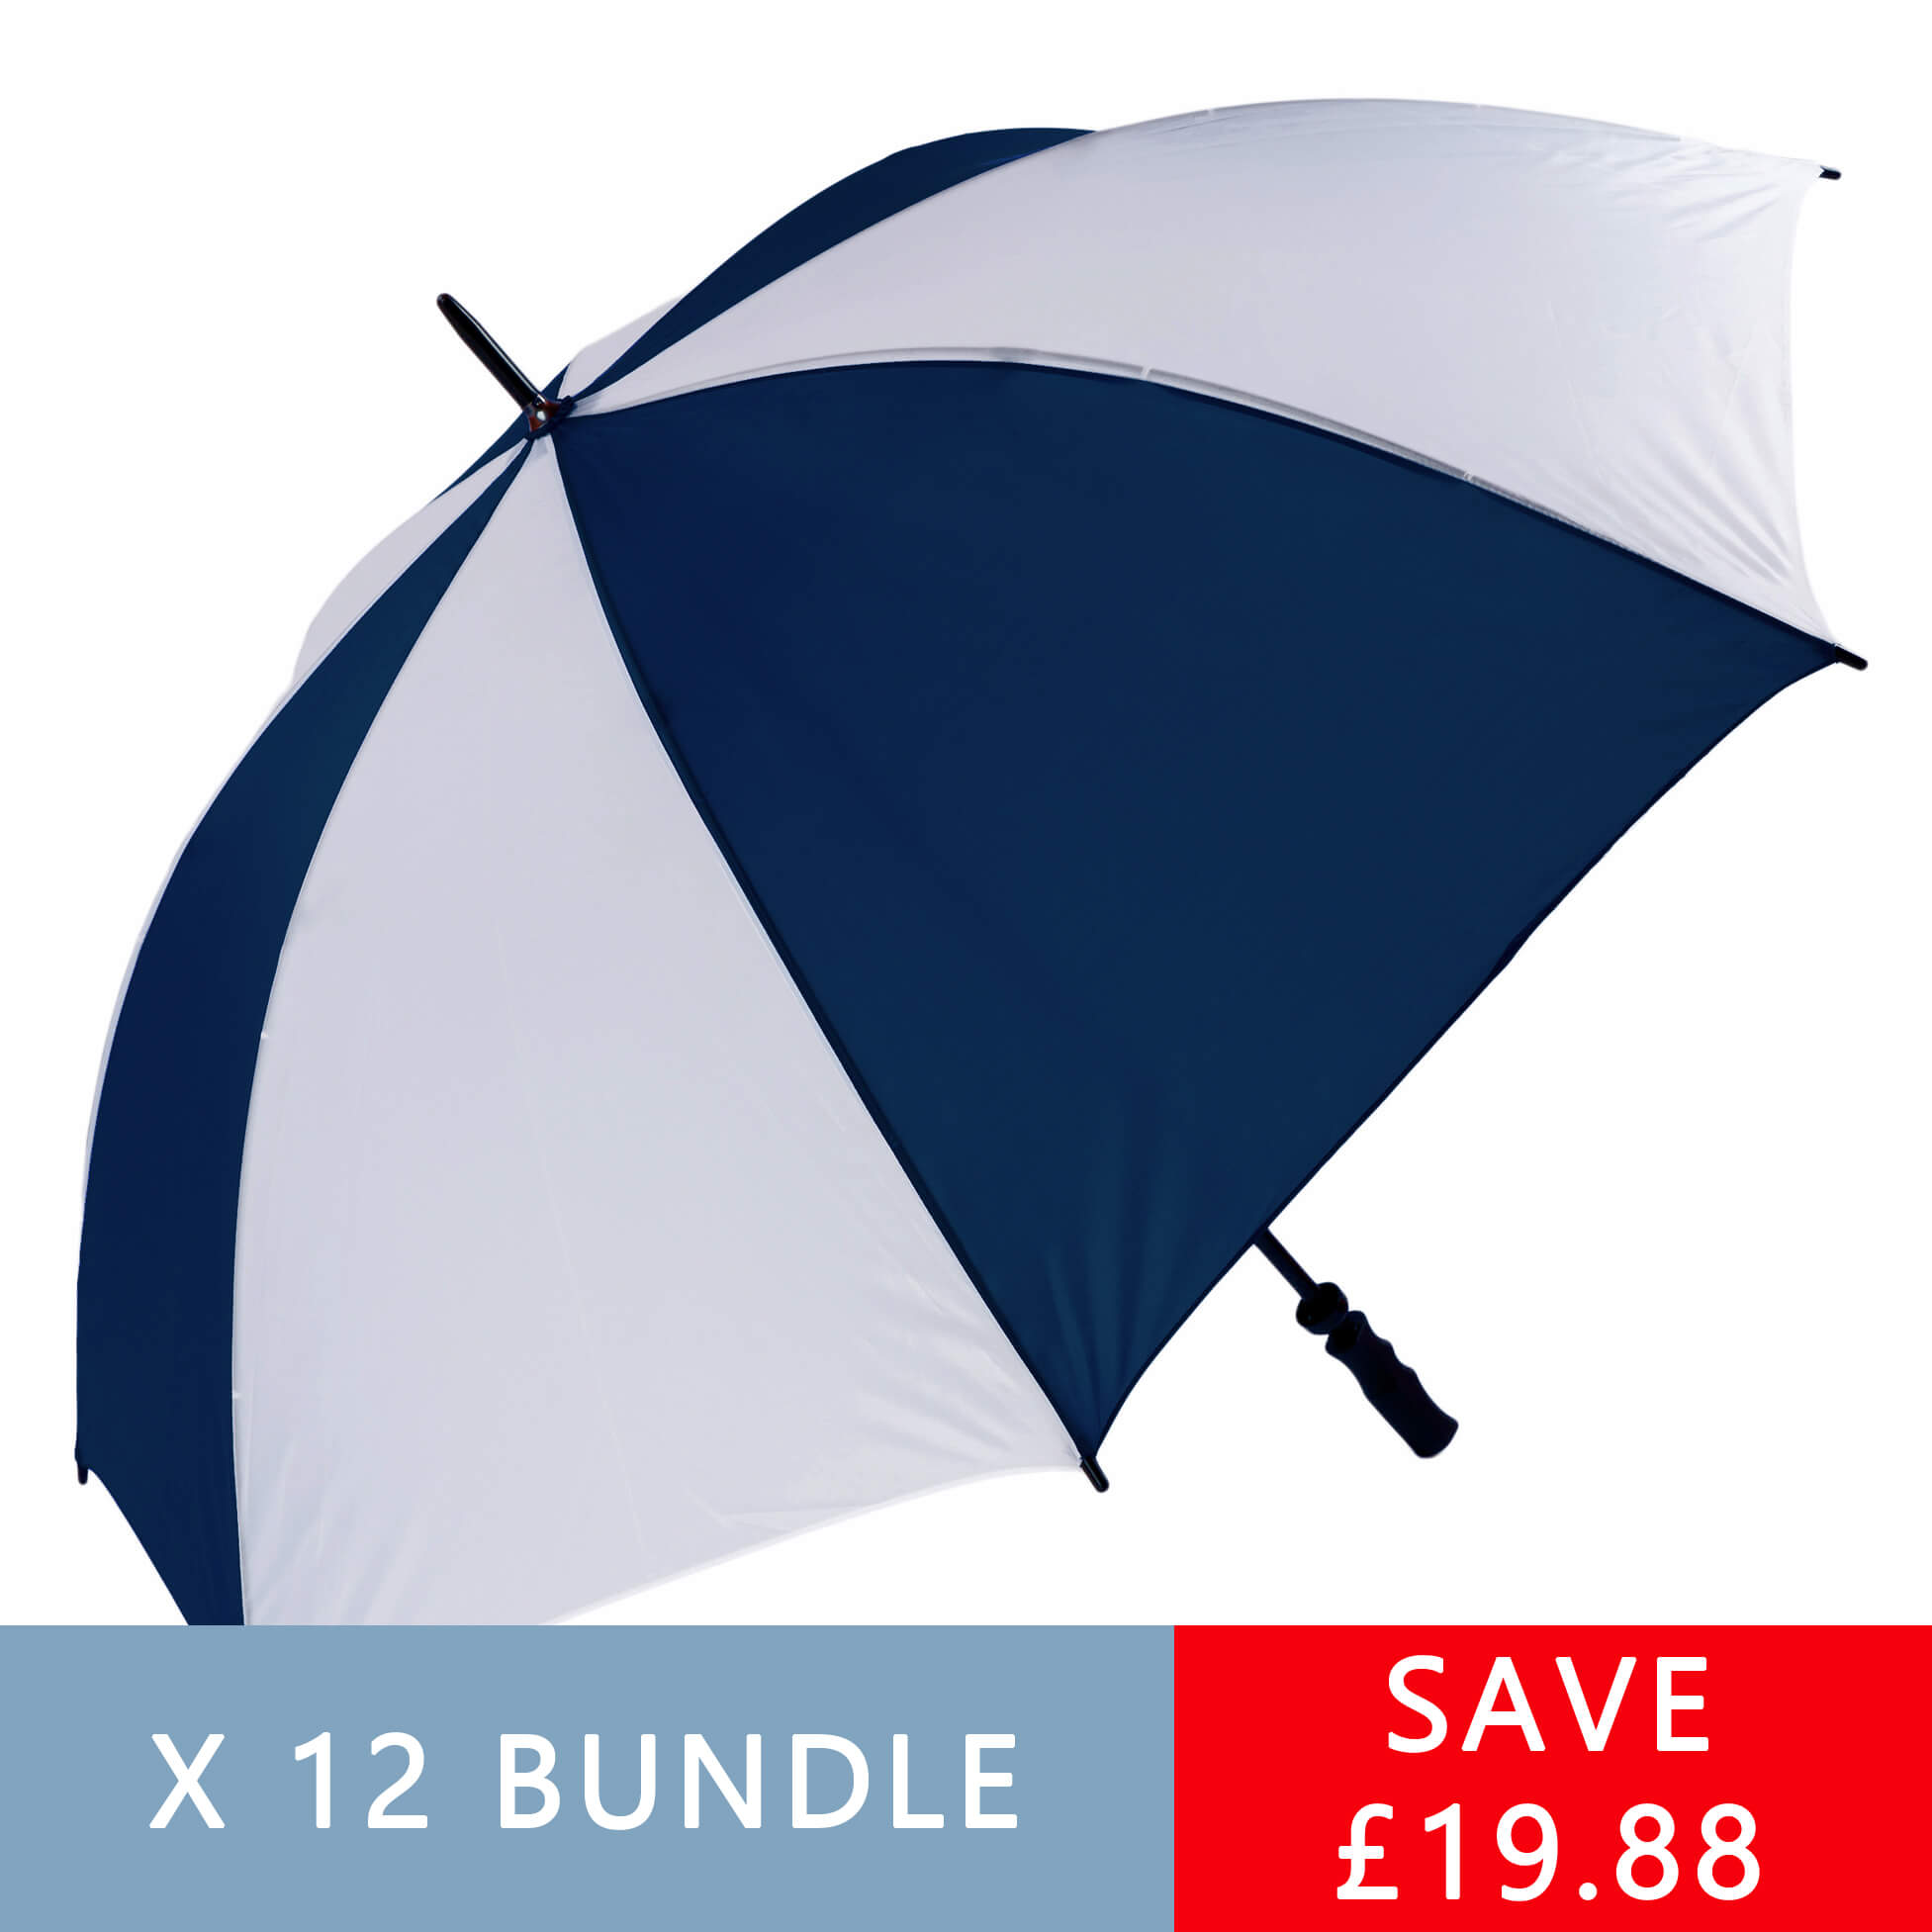 Wind Resistant Navy & White Golf Umbrella - Bundle of 12 (3473-12)